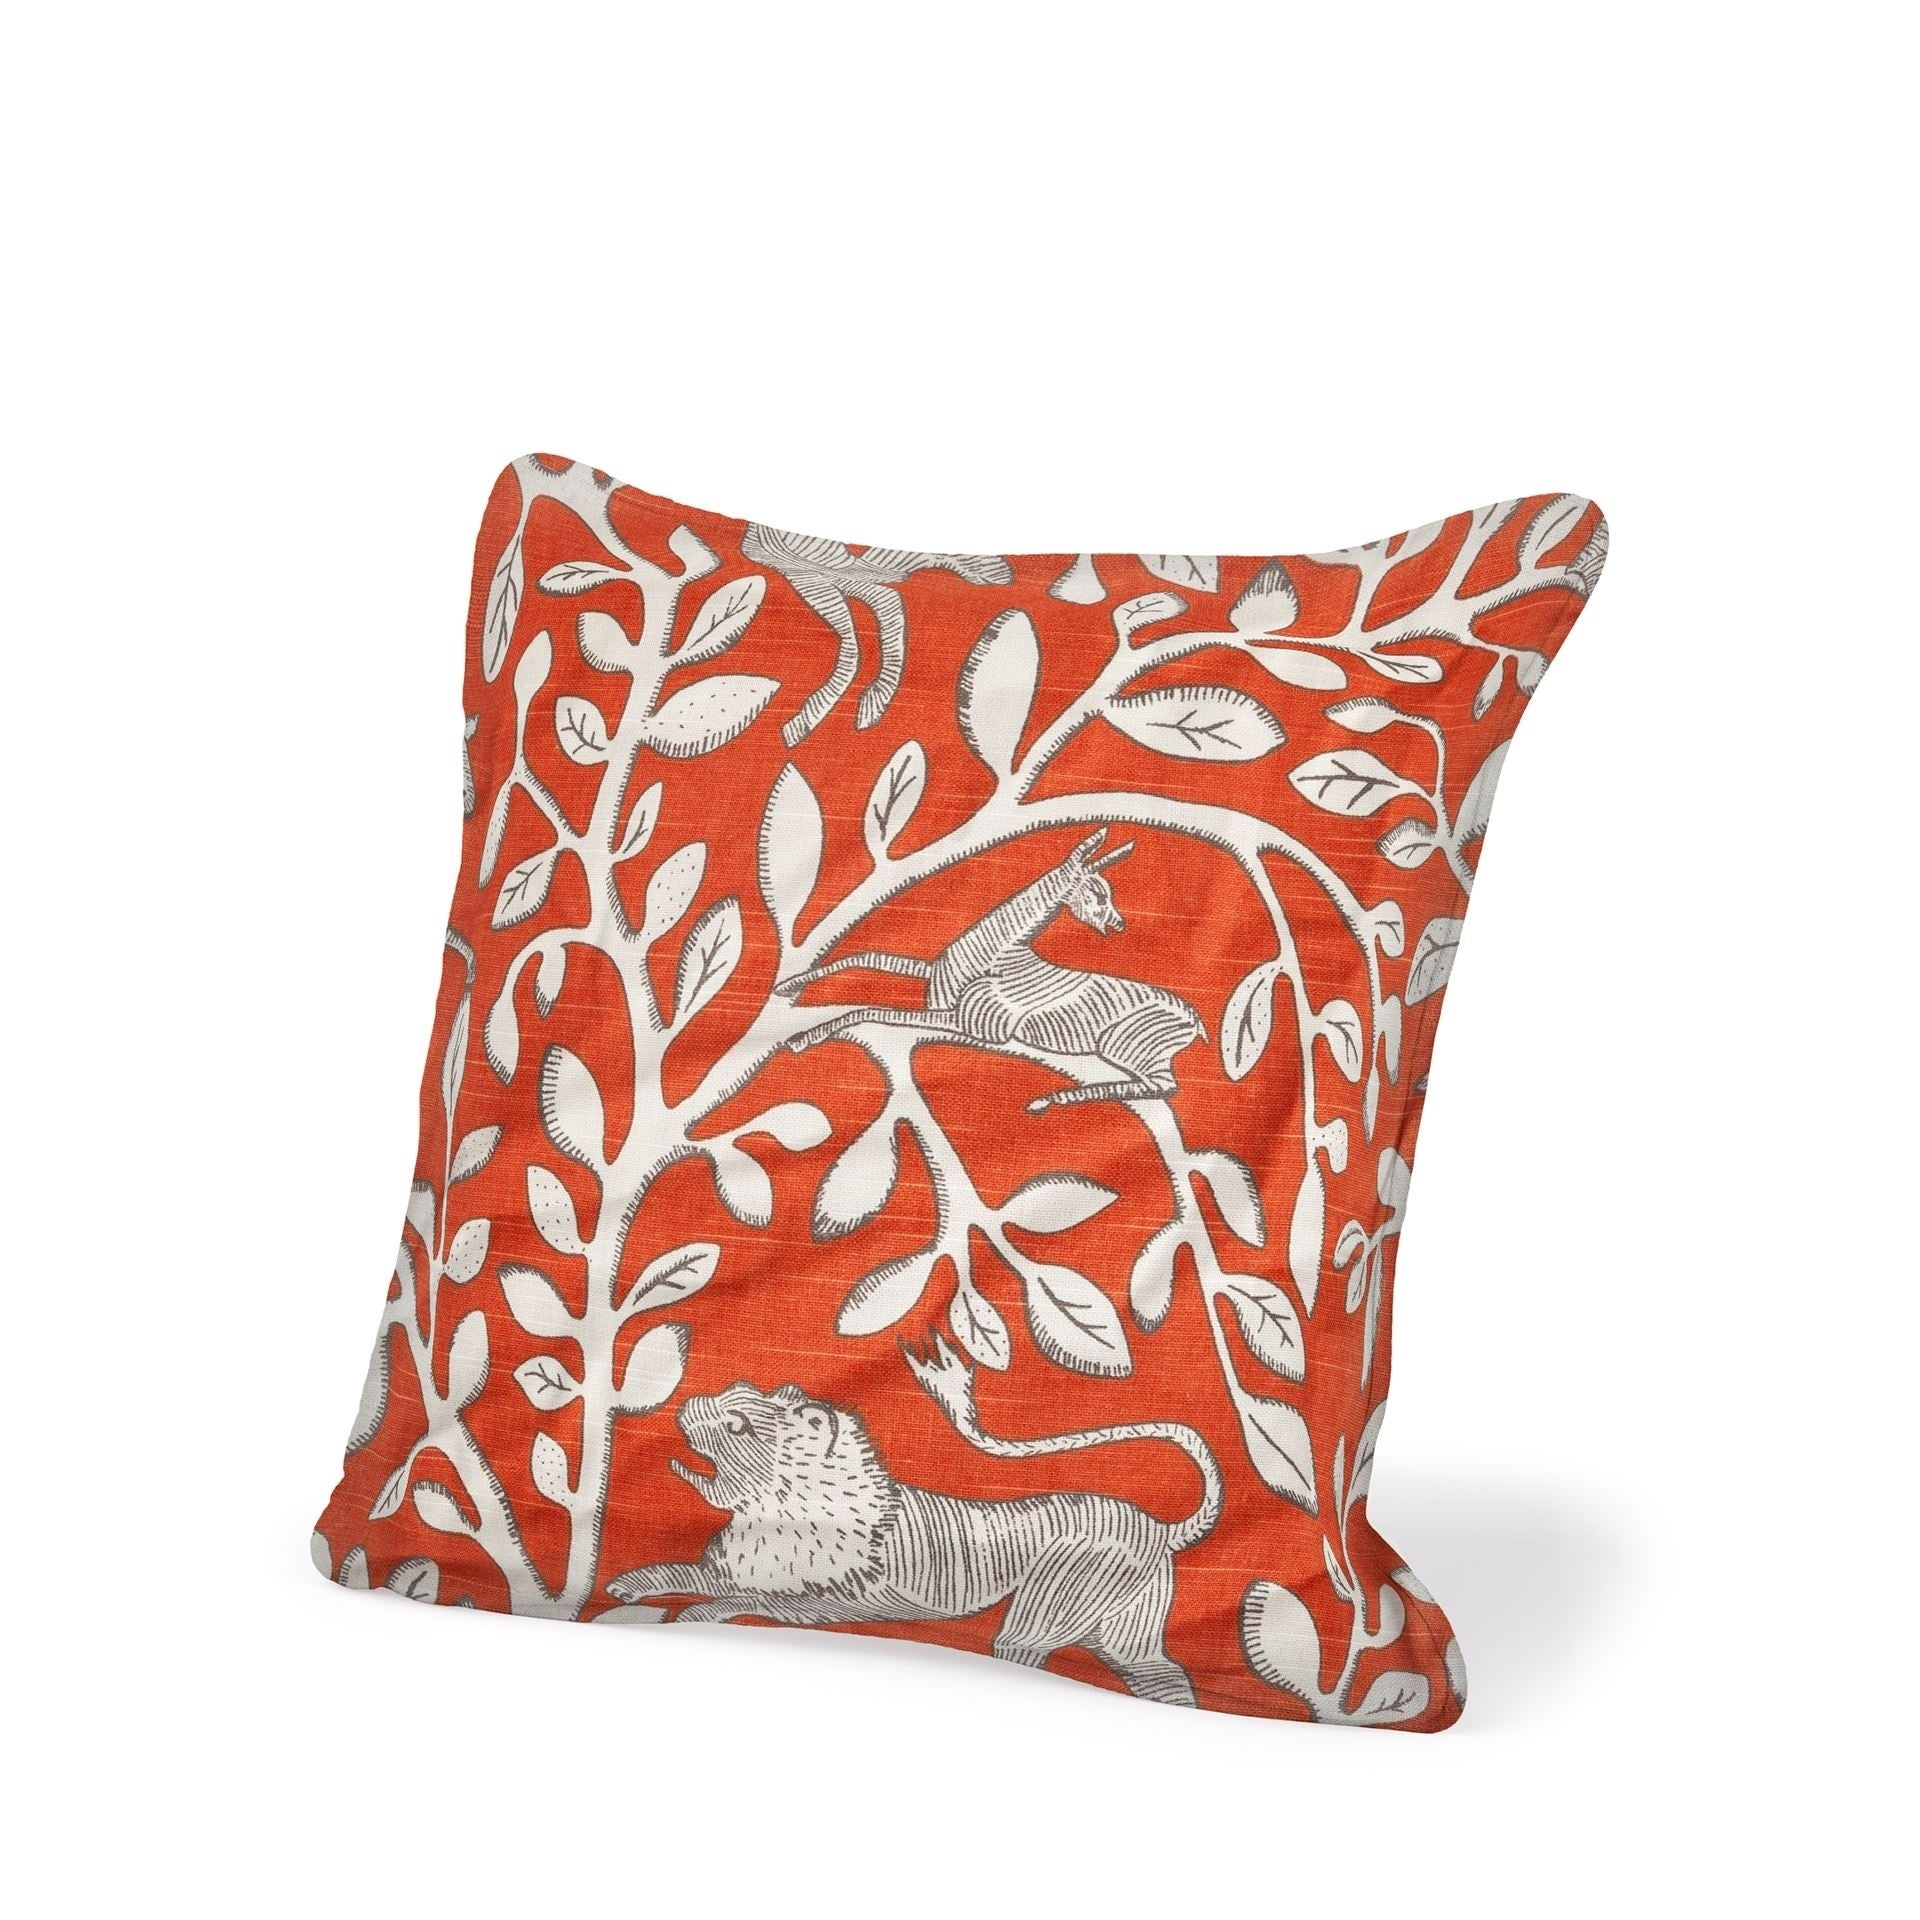 Mercana Daffodil I 18 x 18 (cover only) Decorative Pillow